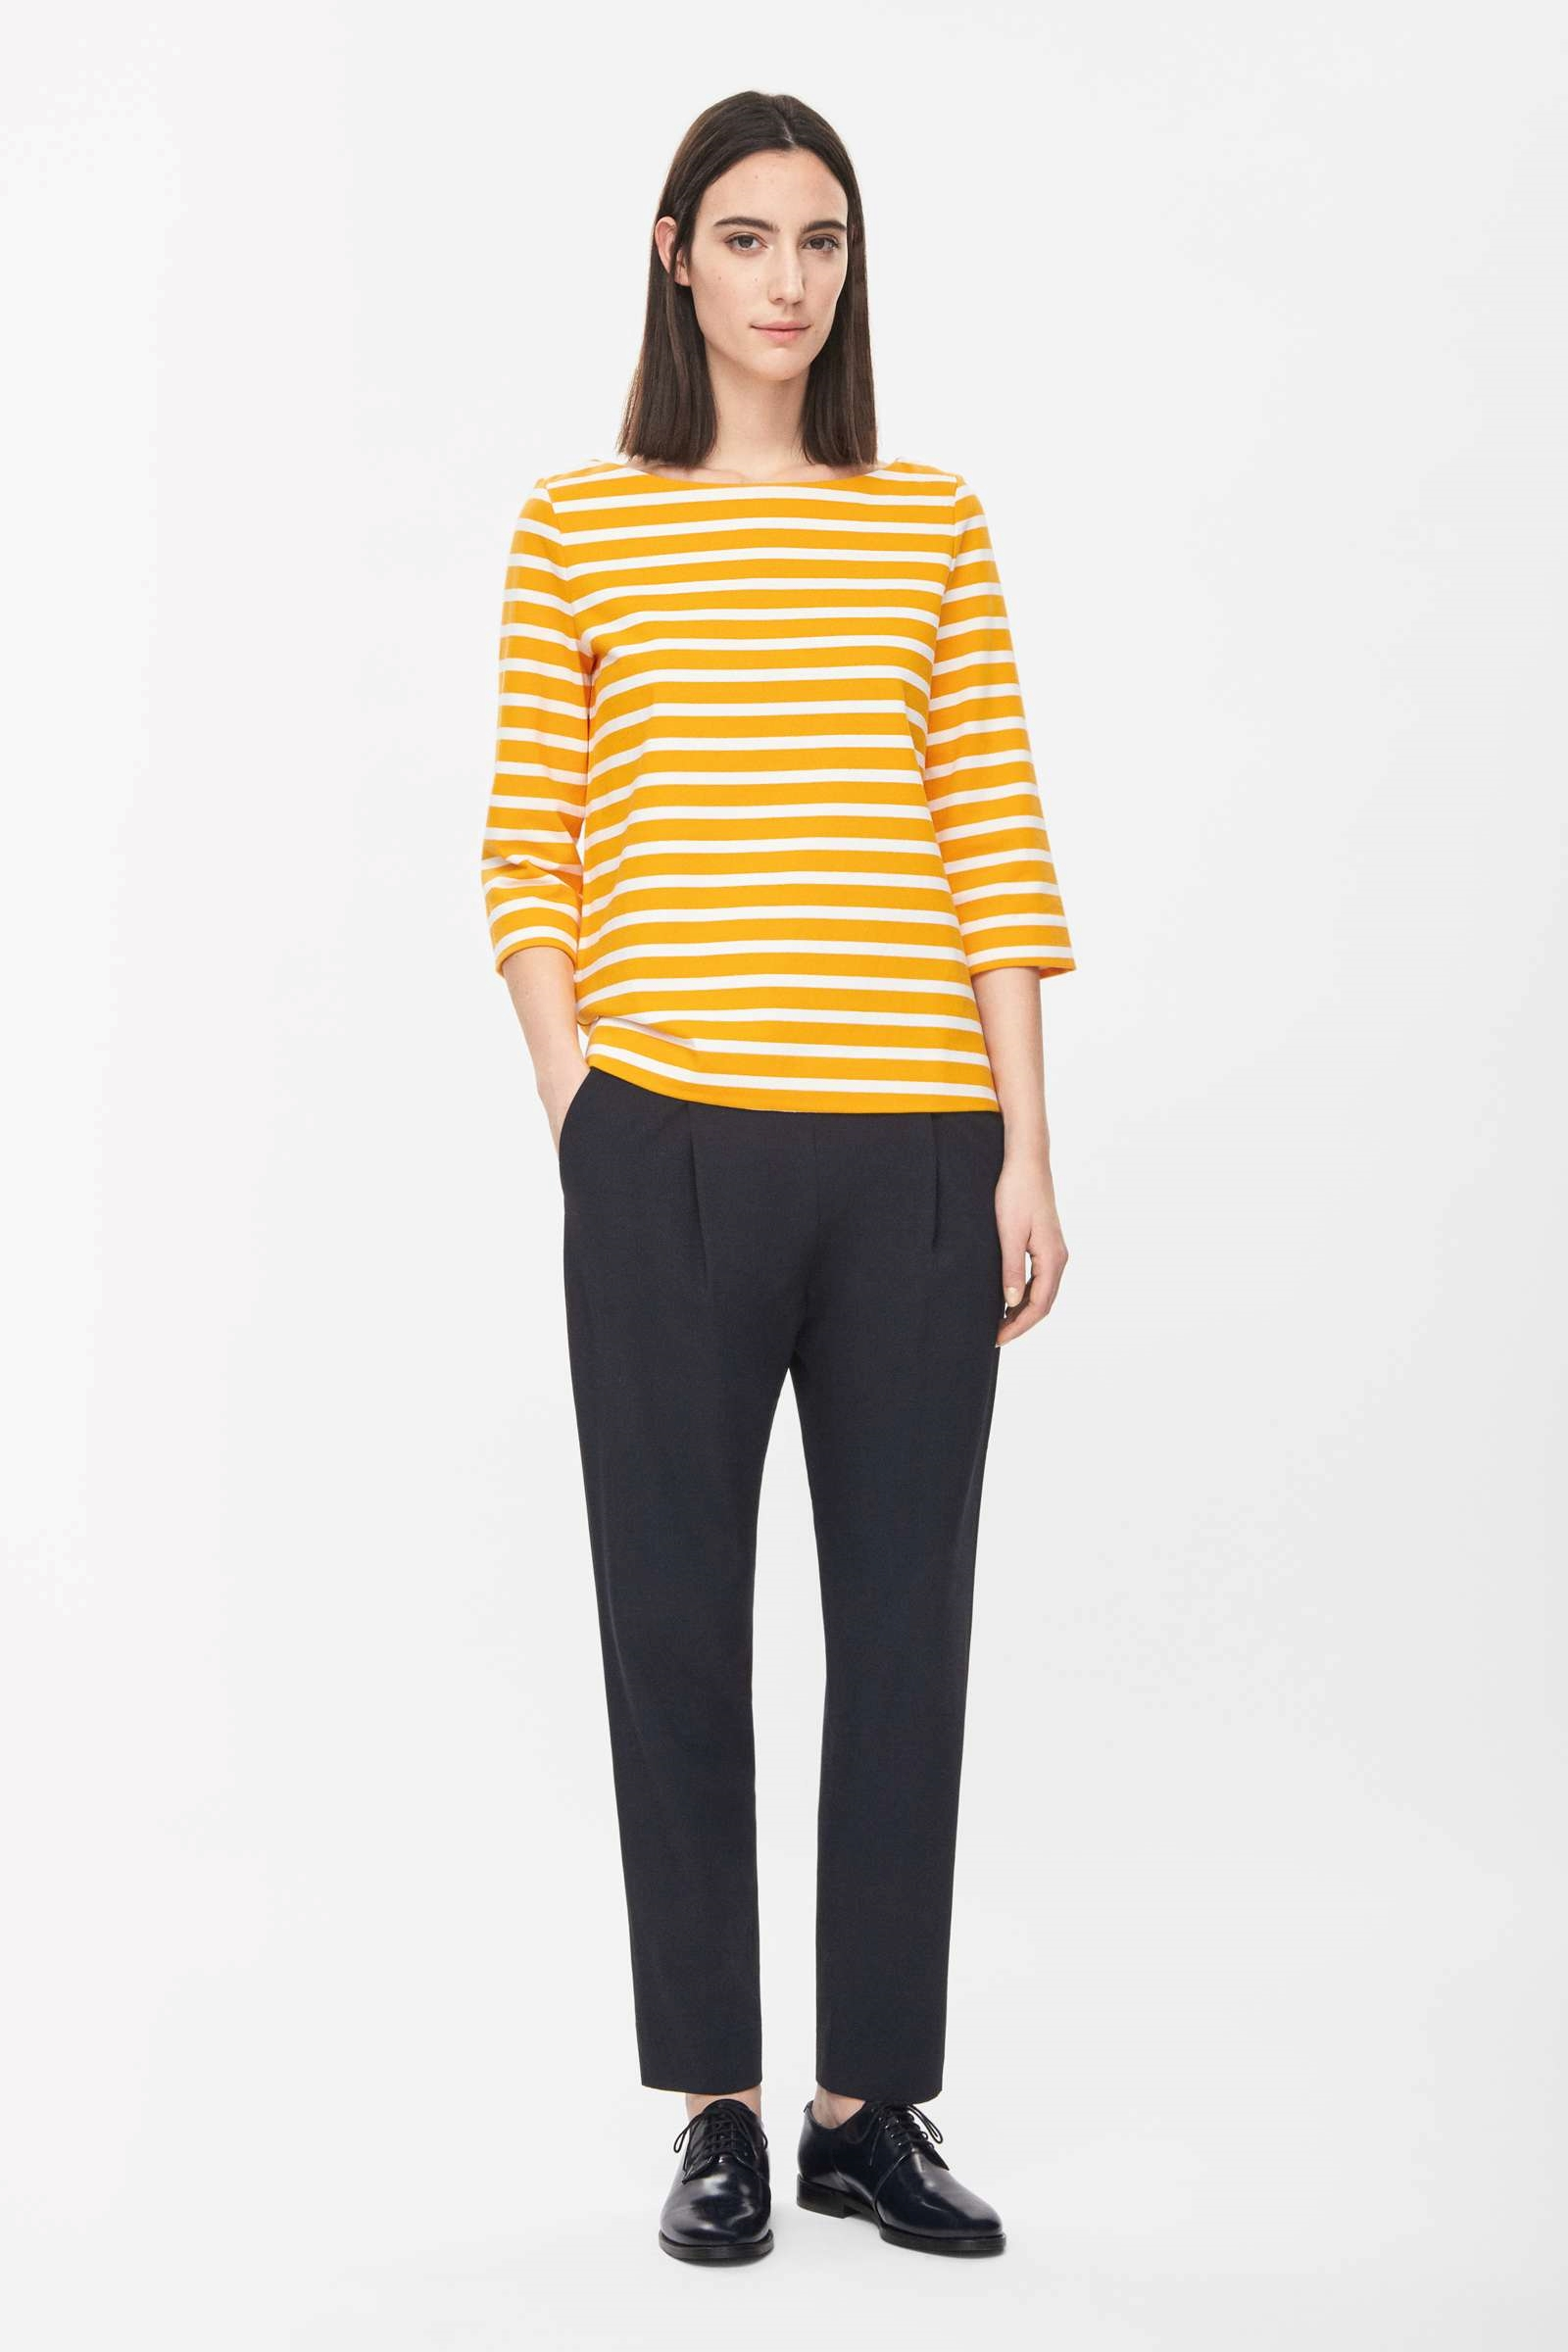 Striped boat-neck top, £45, H&M